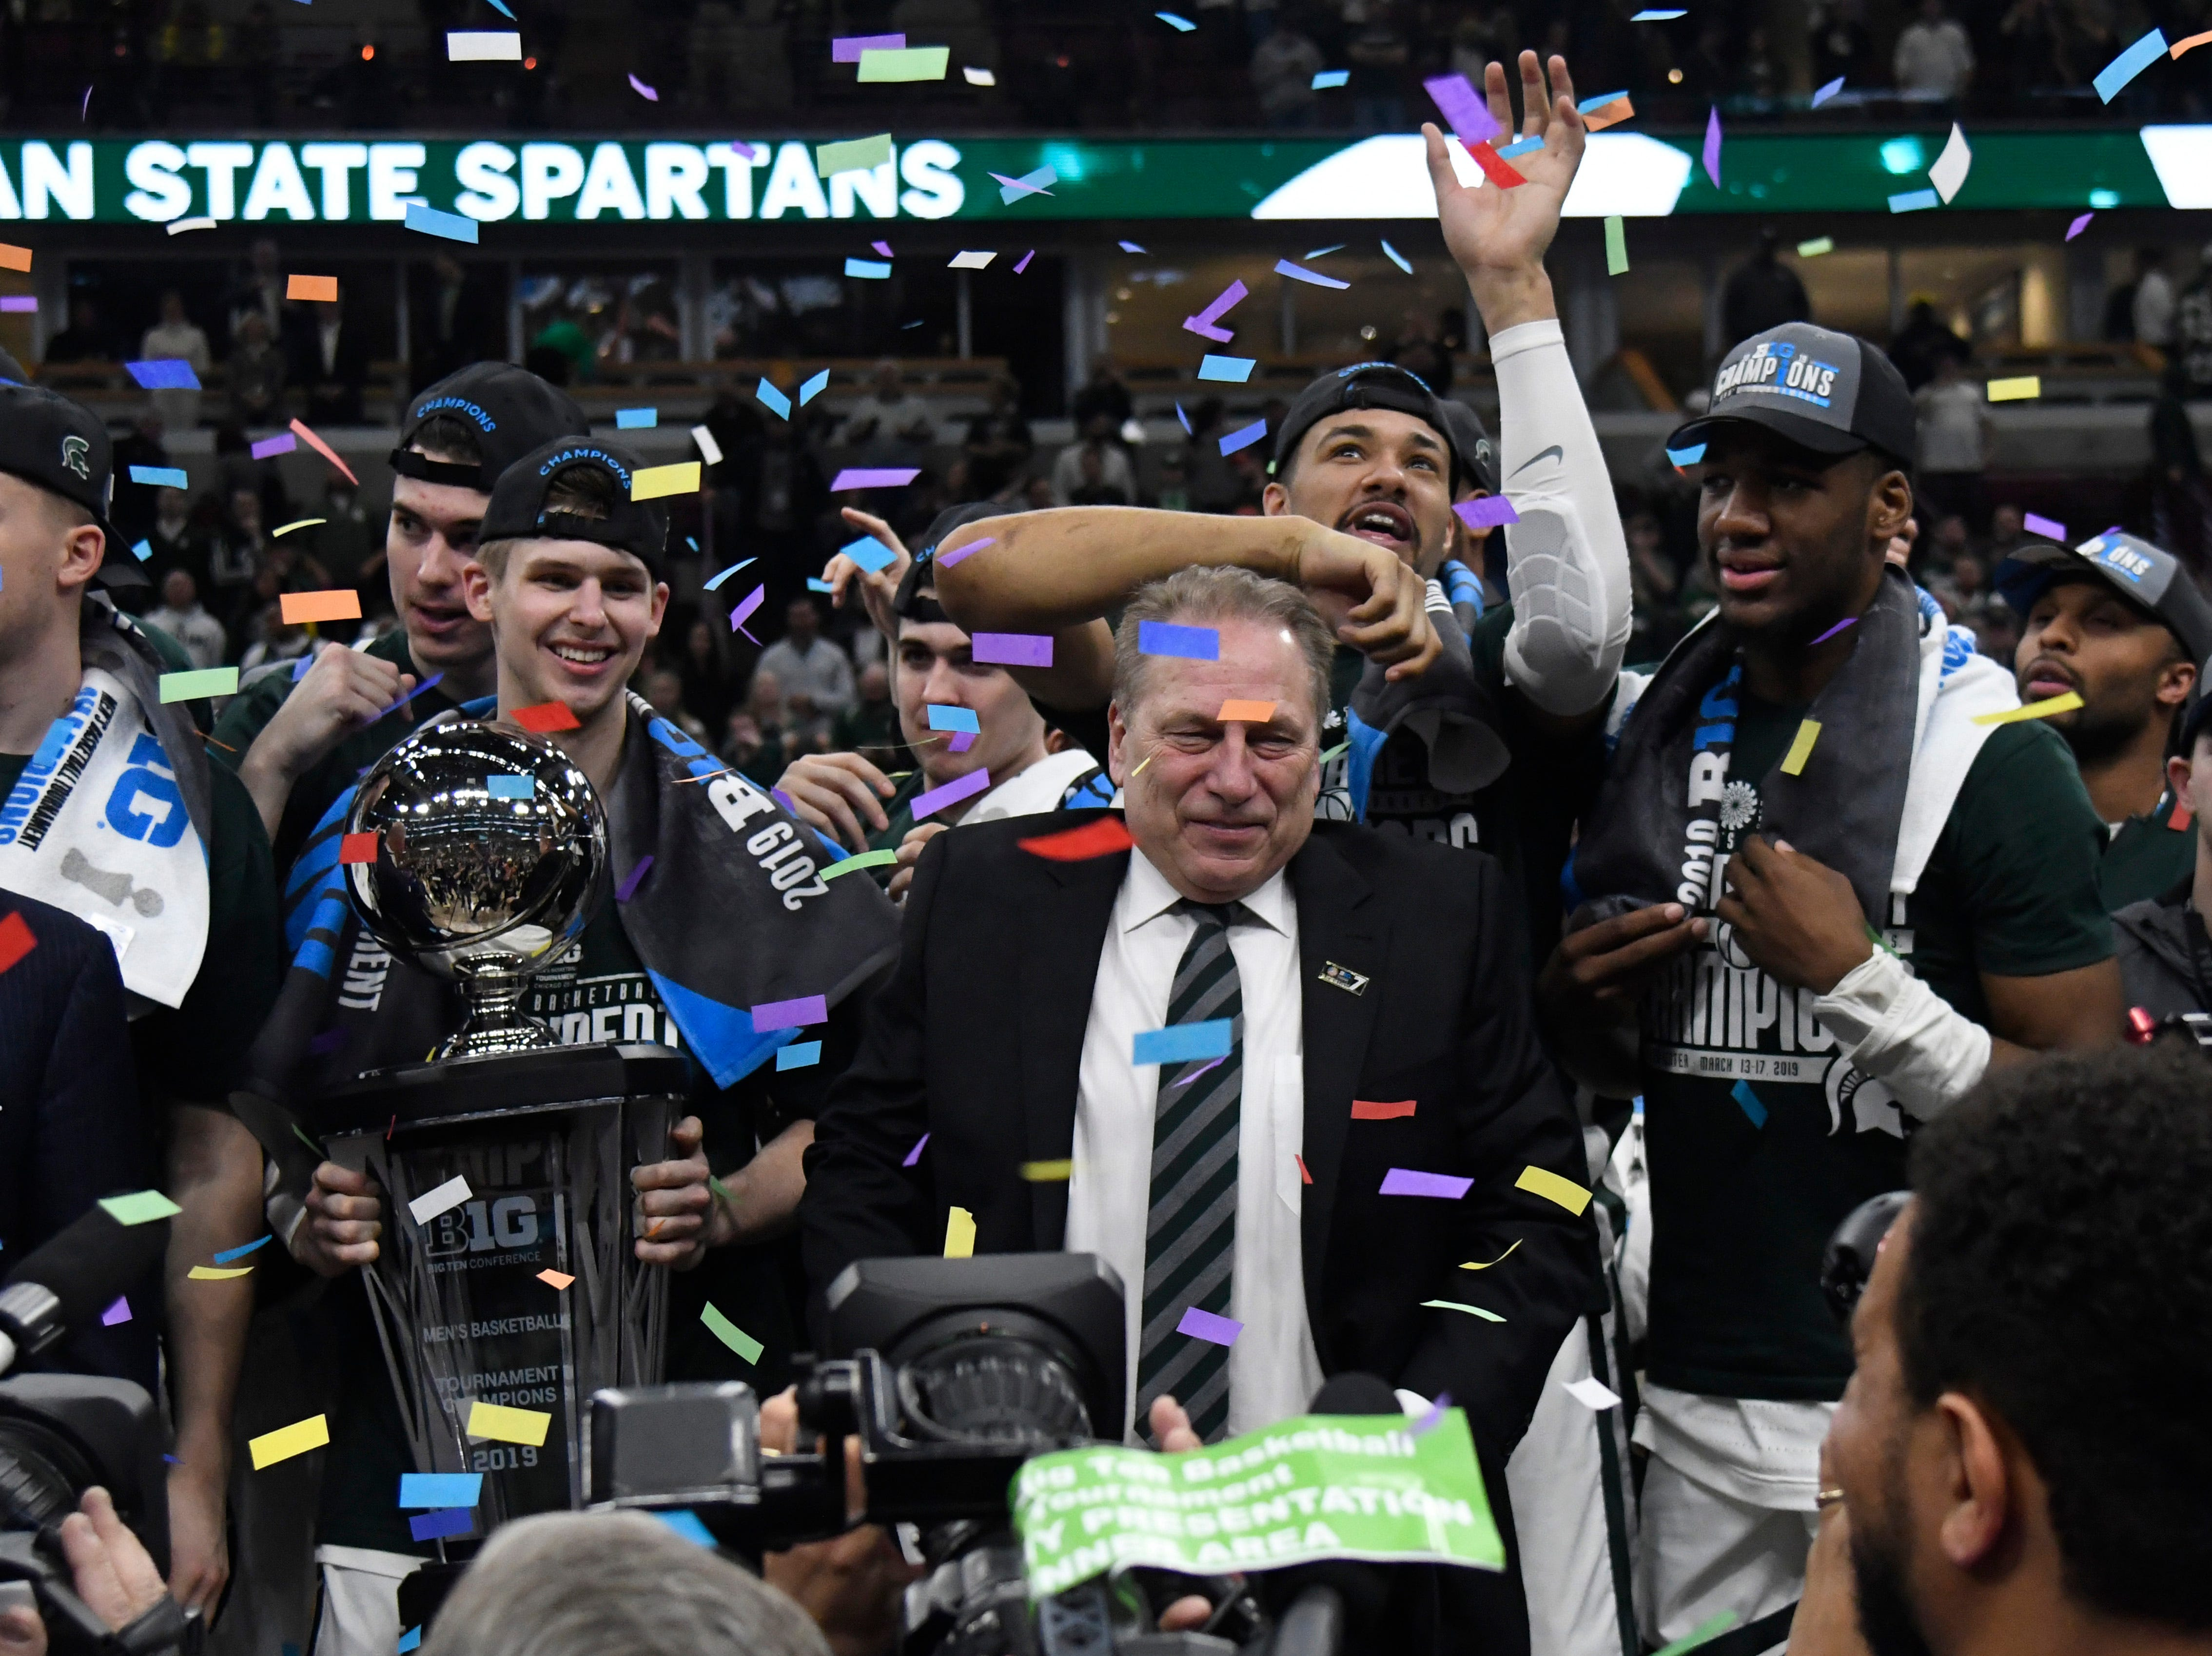 Mar 17, 2019; Chicago, IL, USA; The Michigan State Spartans celebrate their championship against the Michigan Wolverines in the Big Ten conference tournament at United Center. Mandatory Credit: David Banks-USA TODAY Sports